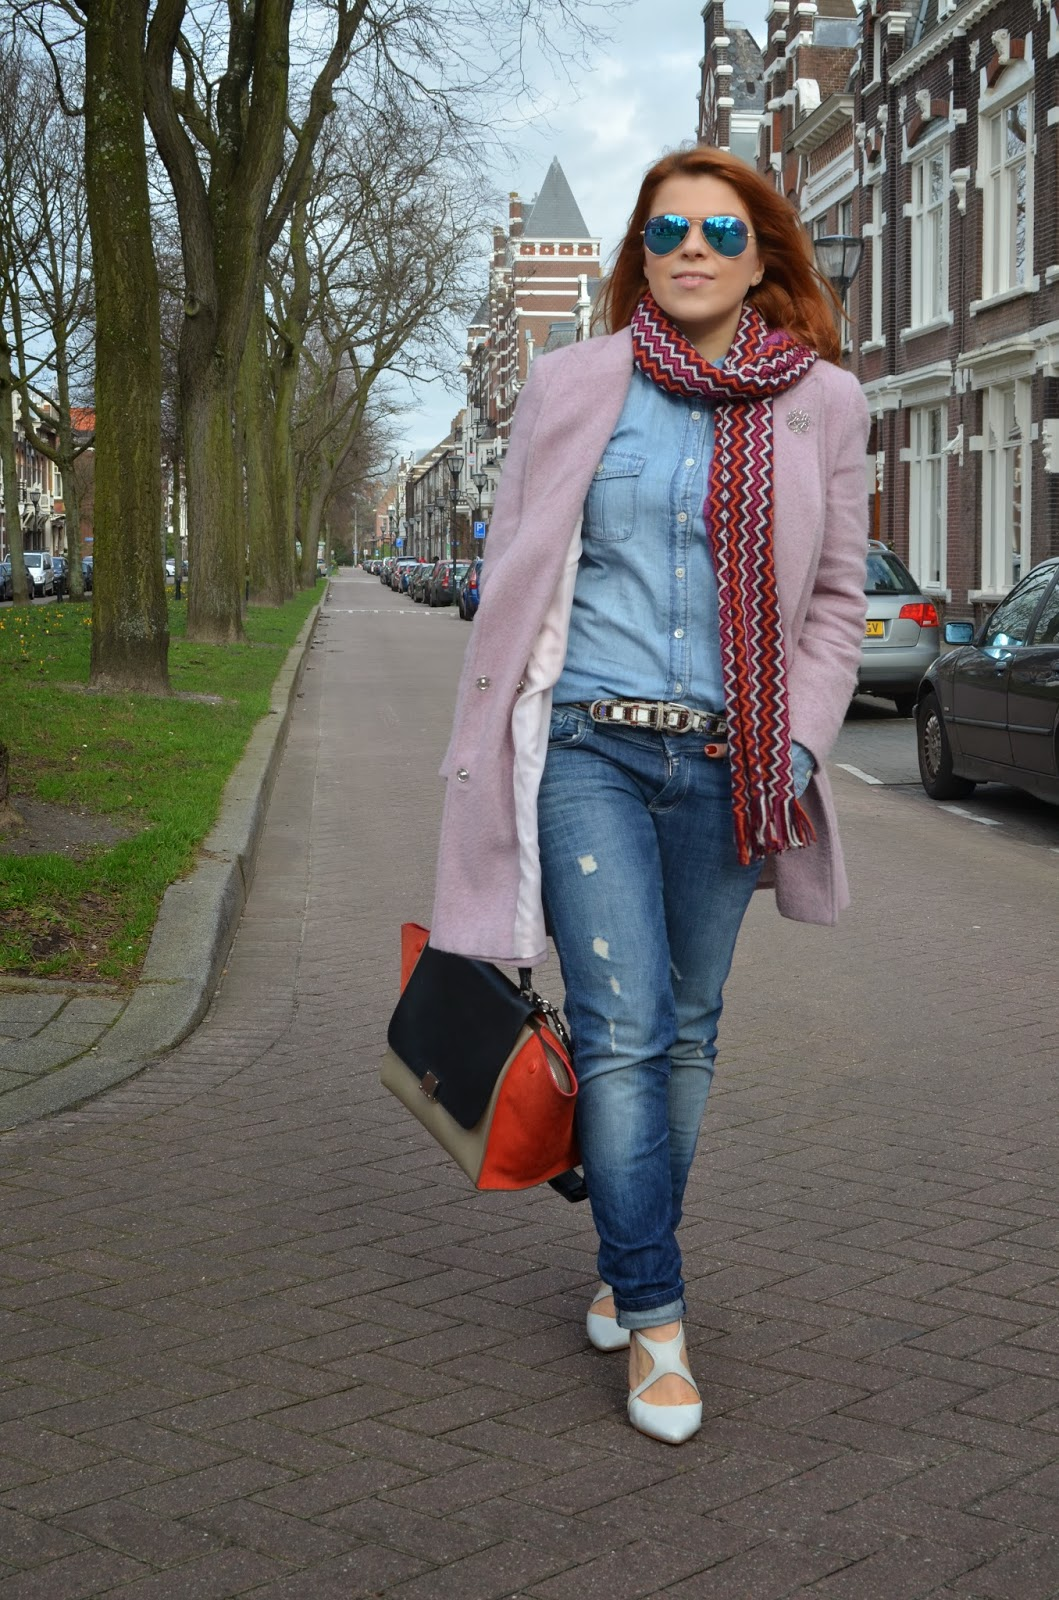 fashion bridge, fashion-bridge.blogspot.com, fashion bridge blog, street style, street style netherlands, street fashion, street fashion netherlands, celine trapeze bag, missoni scarves, jak joten, tres jewellery, brooches, pink coats, street style pink coats